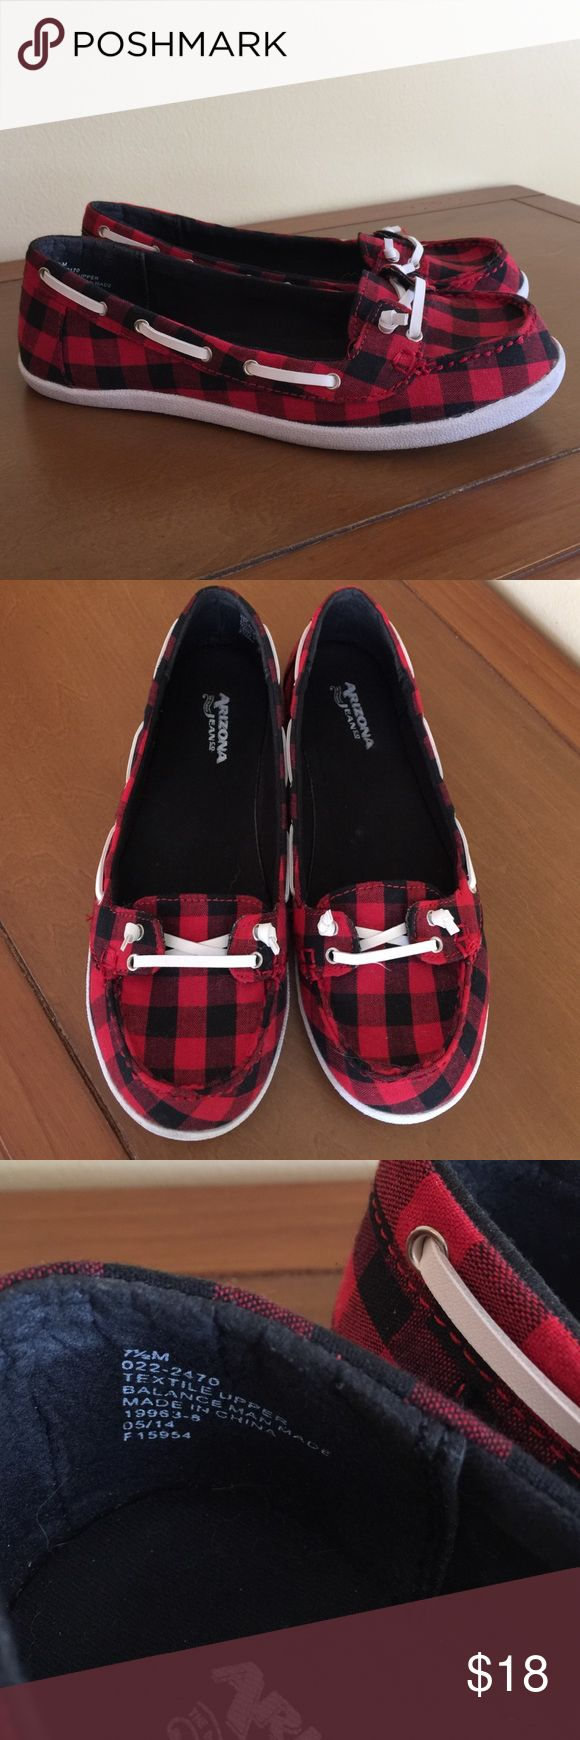 Cute Buffalo Plaid Boat Shoes Black and red buffalo plaid pattern fabric, white leather ties, 1/2 in white heel. Love these!! Arizona Jean Company Shoes Flats & Loafers